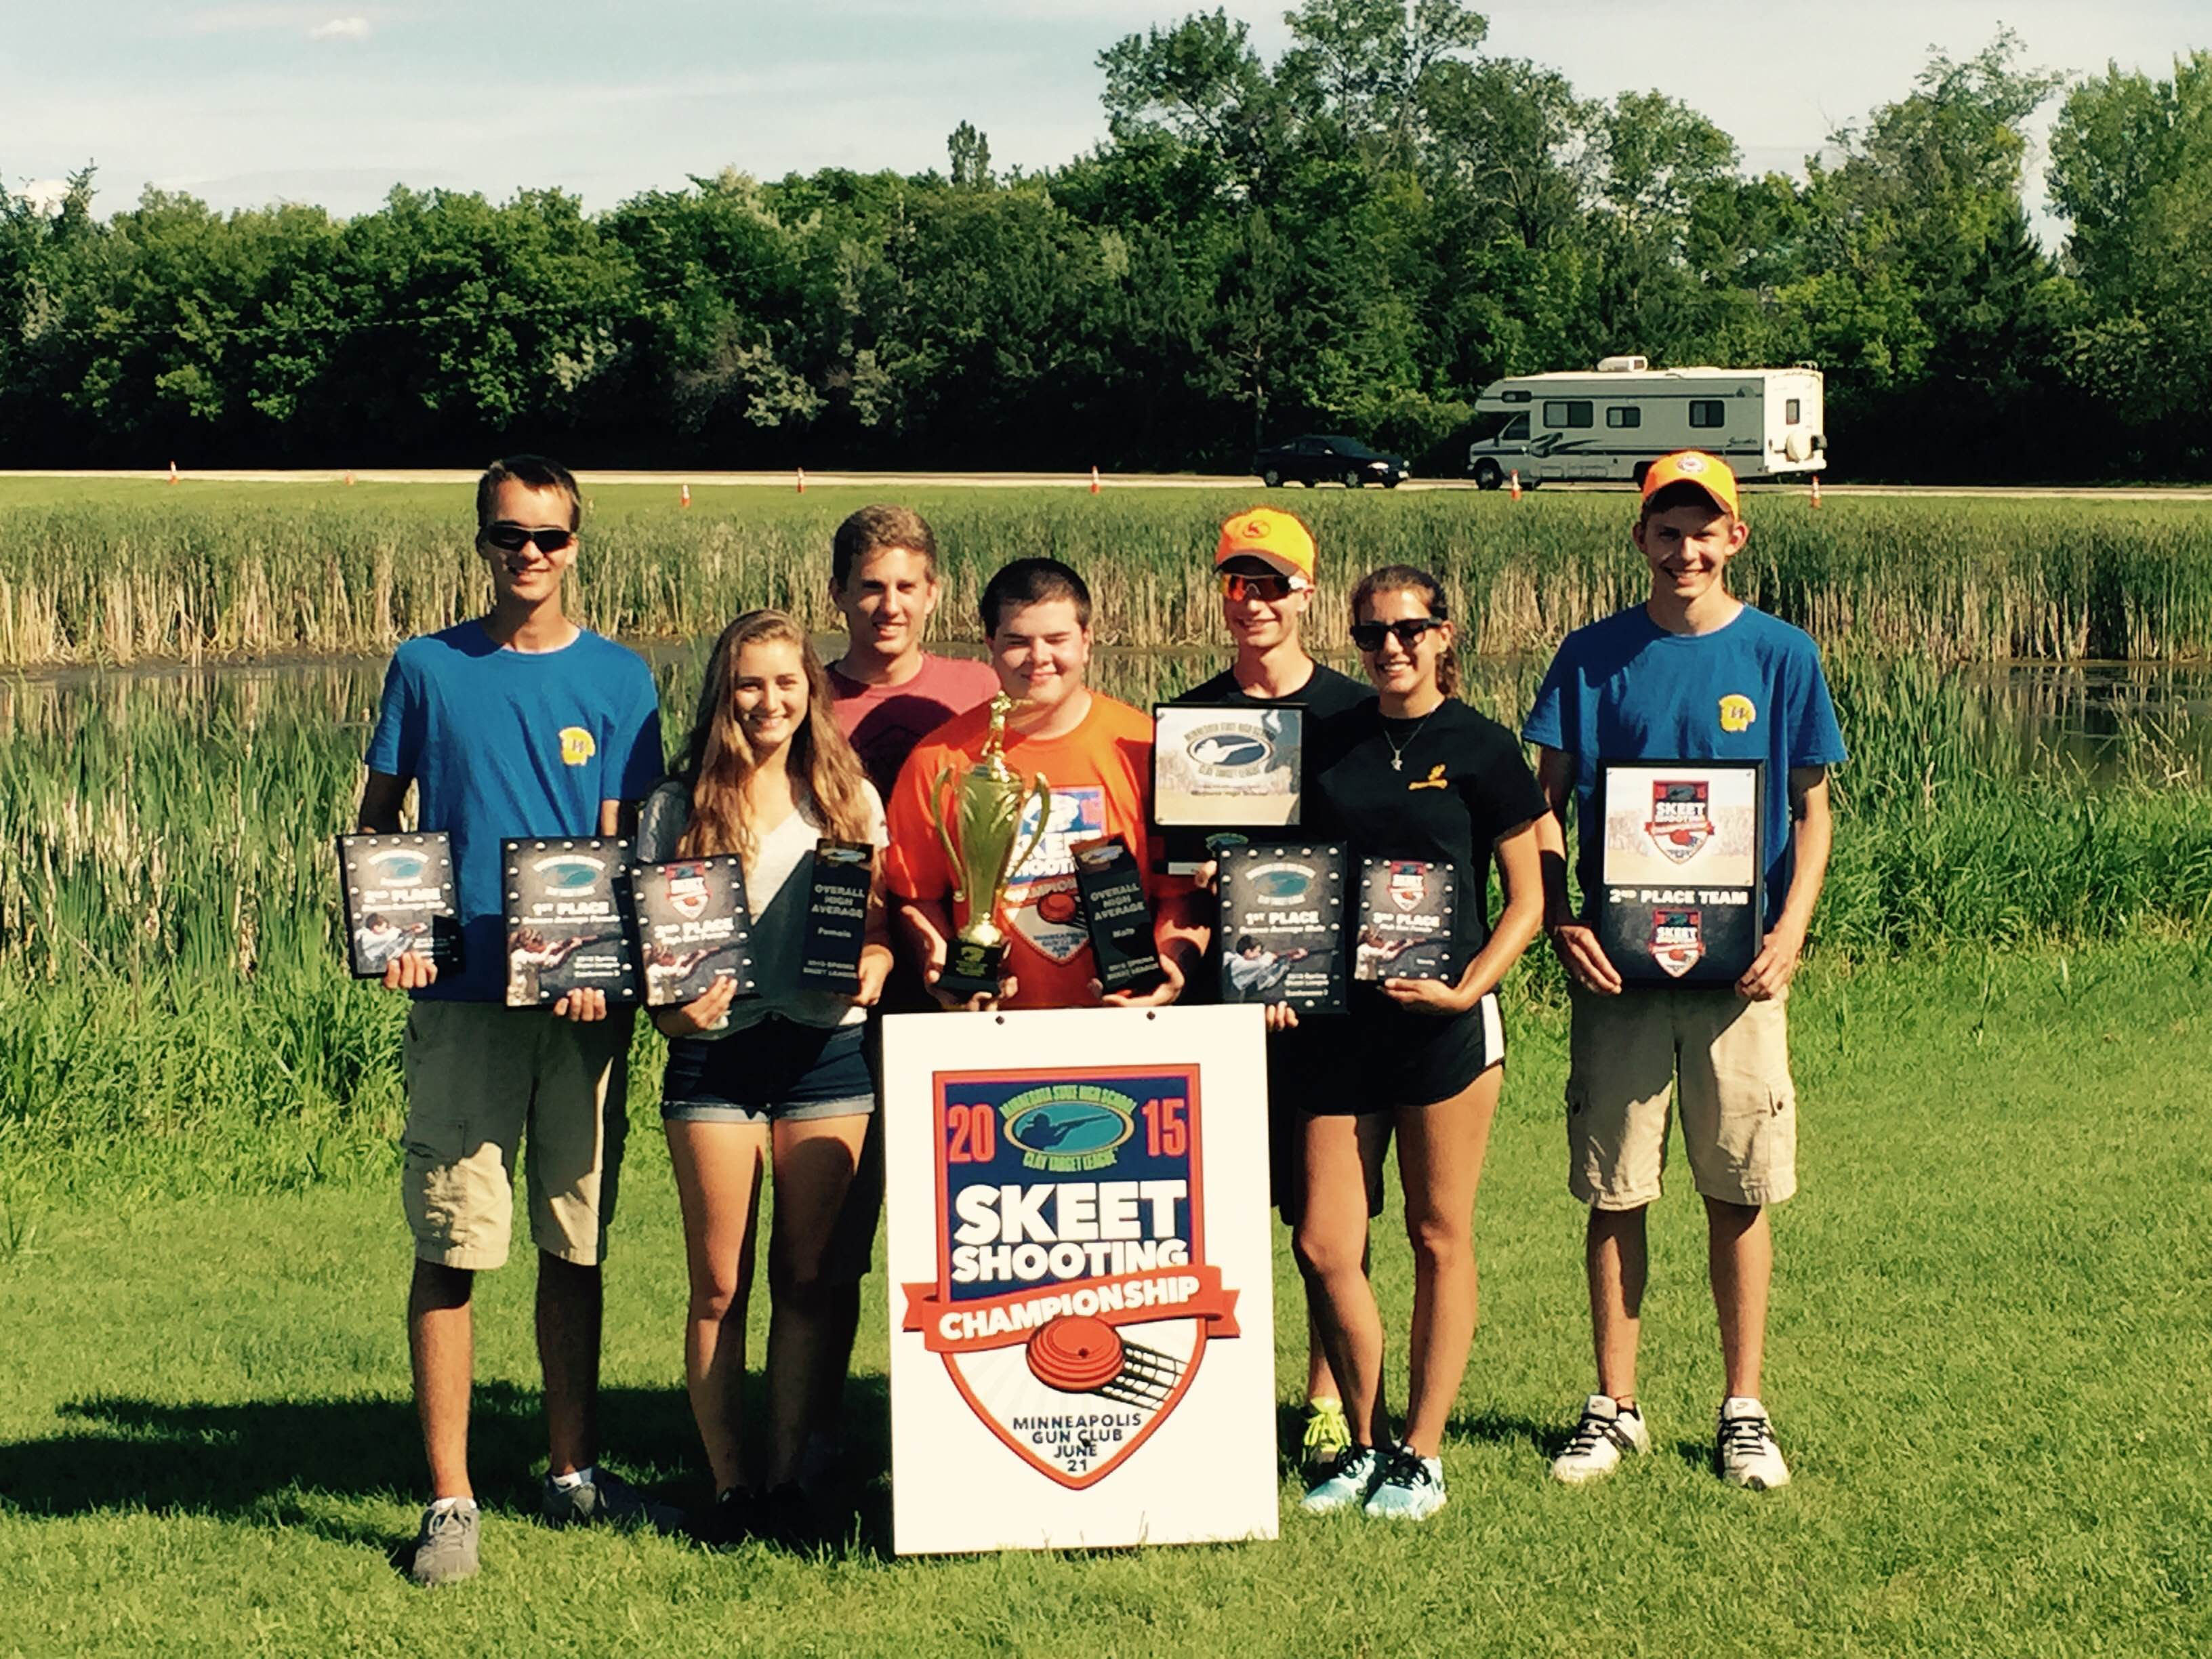 State HS skeet champs 2015